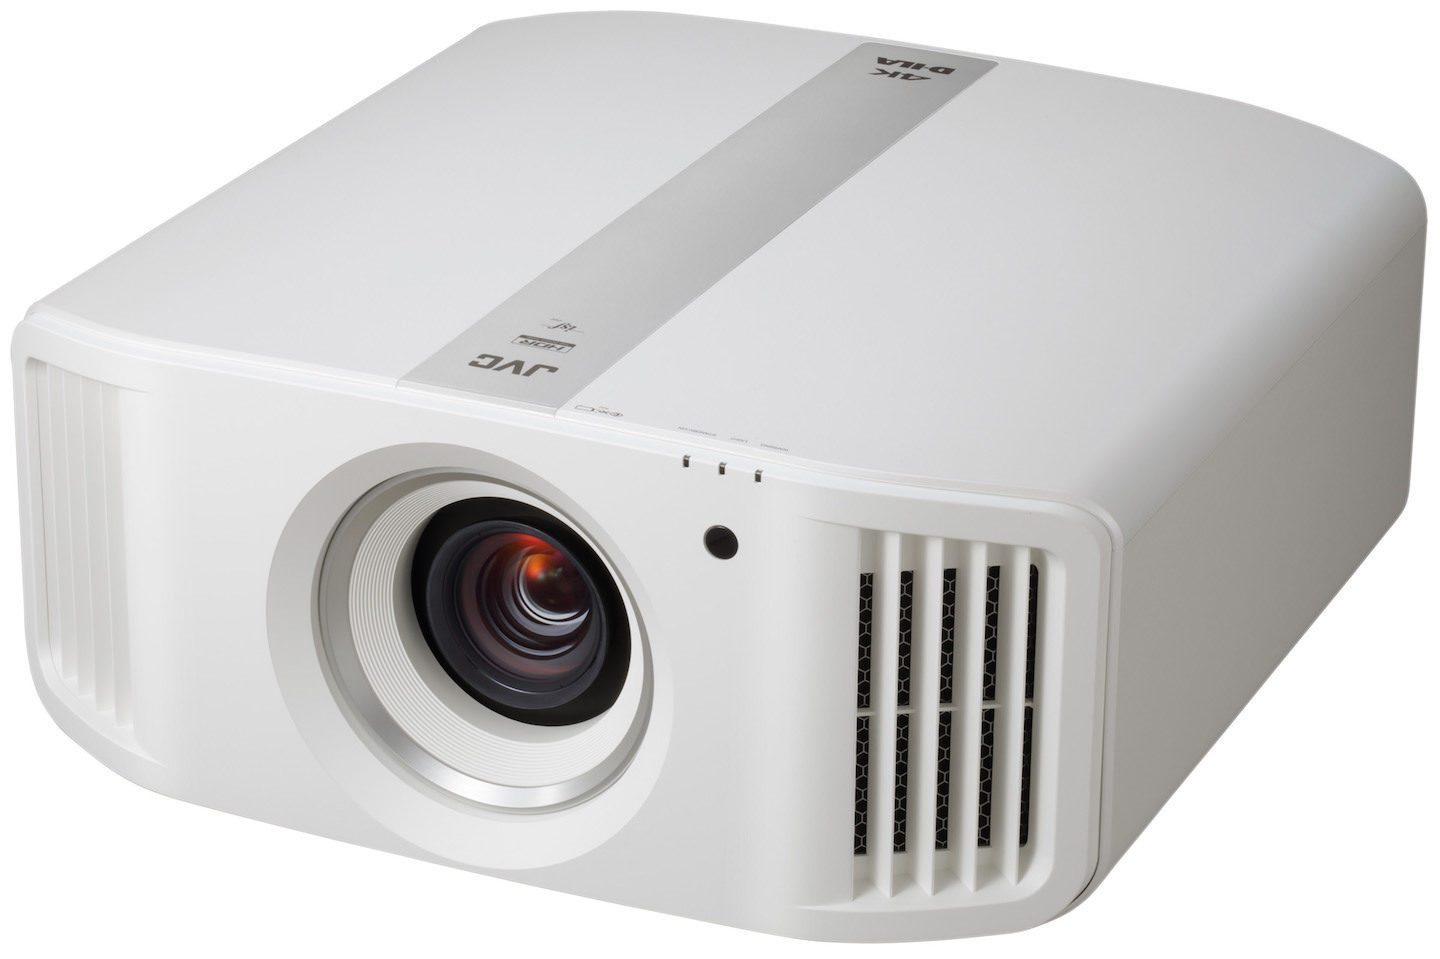 JVC DLA-N5 4K REFERENCE SERIES 4K D-ILA PROJECTOR RS1000